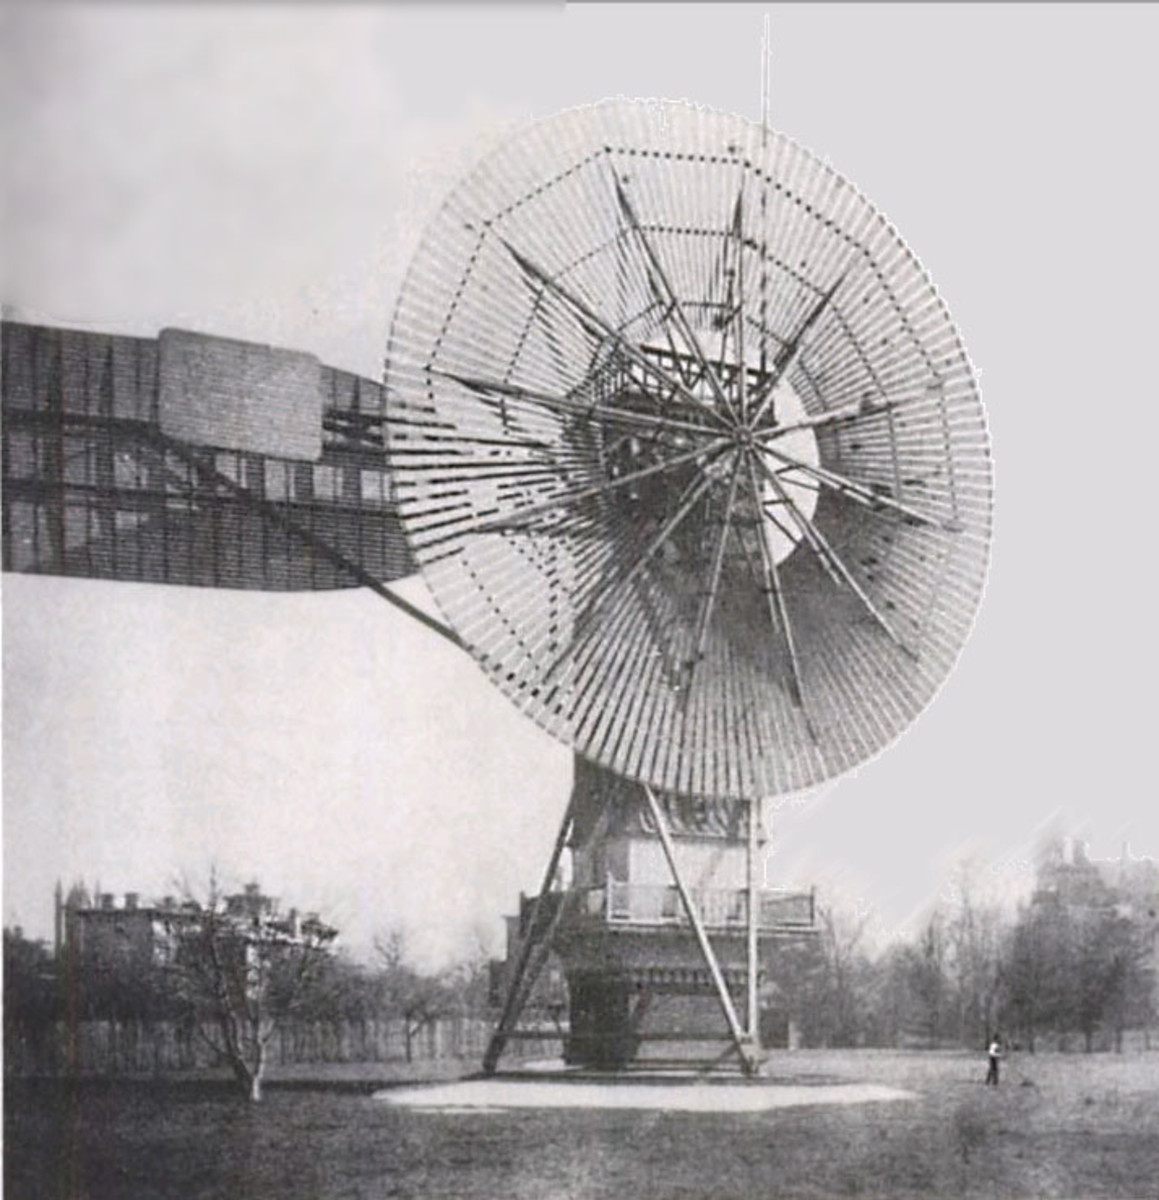 Wind power has been around in human life for a long time, wind-powered sails on boats being a classic example.  It wasn't until the 19th century that it was used to create electricity, however.  Pictured is Charles Brush's windmill of 1888.